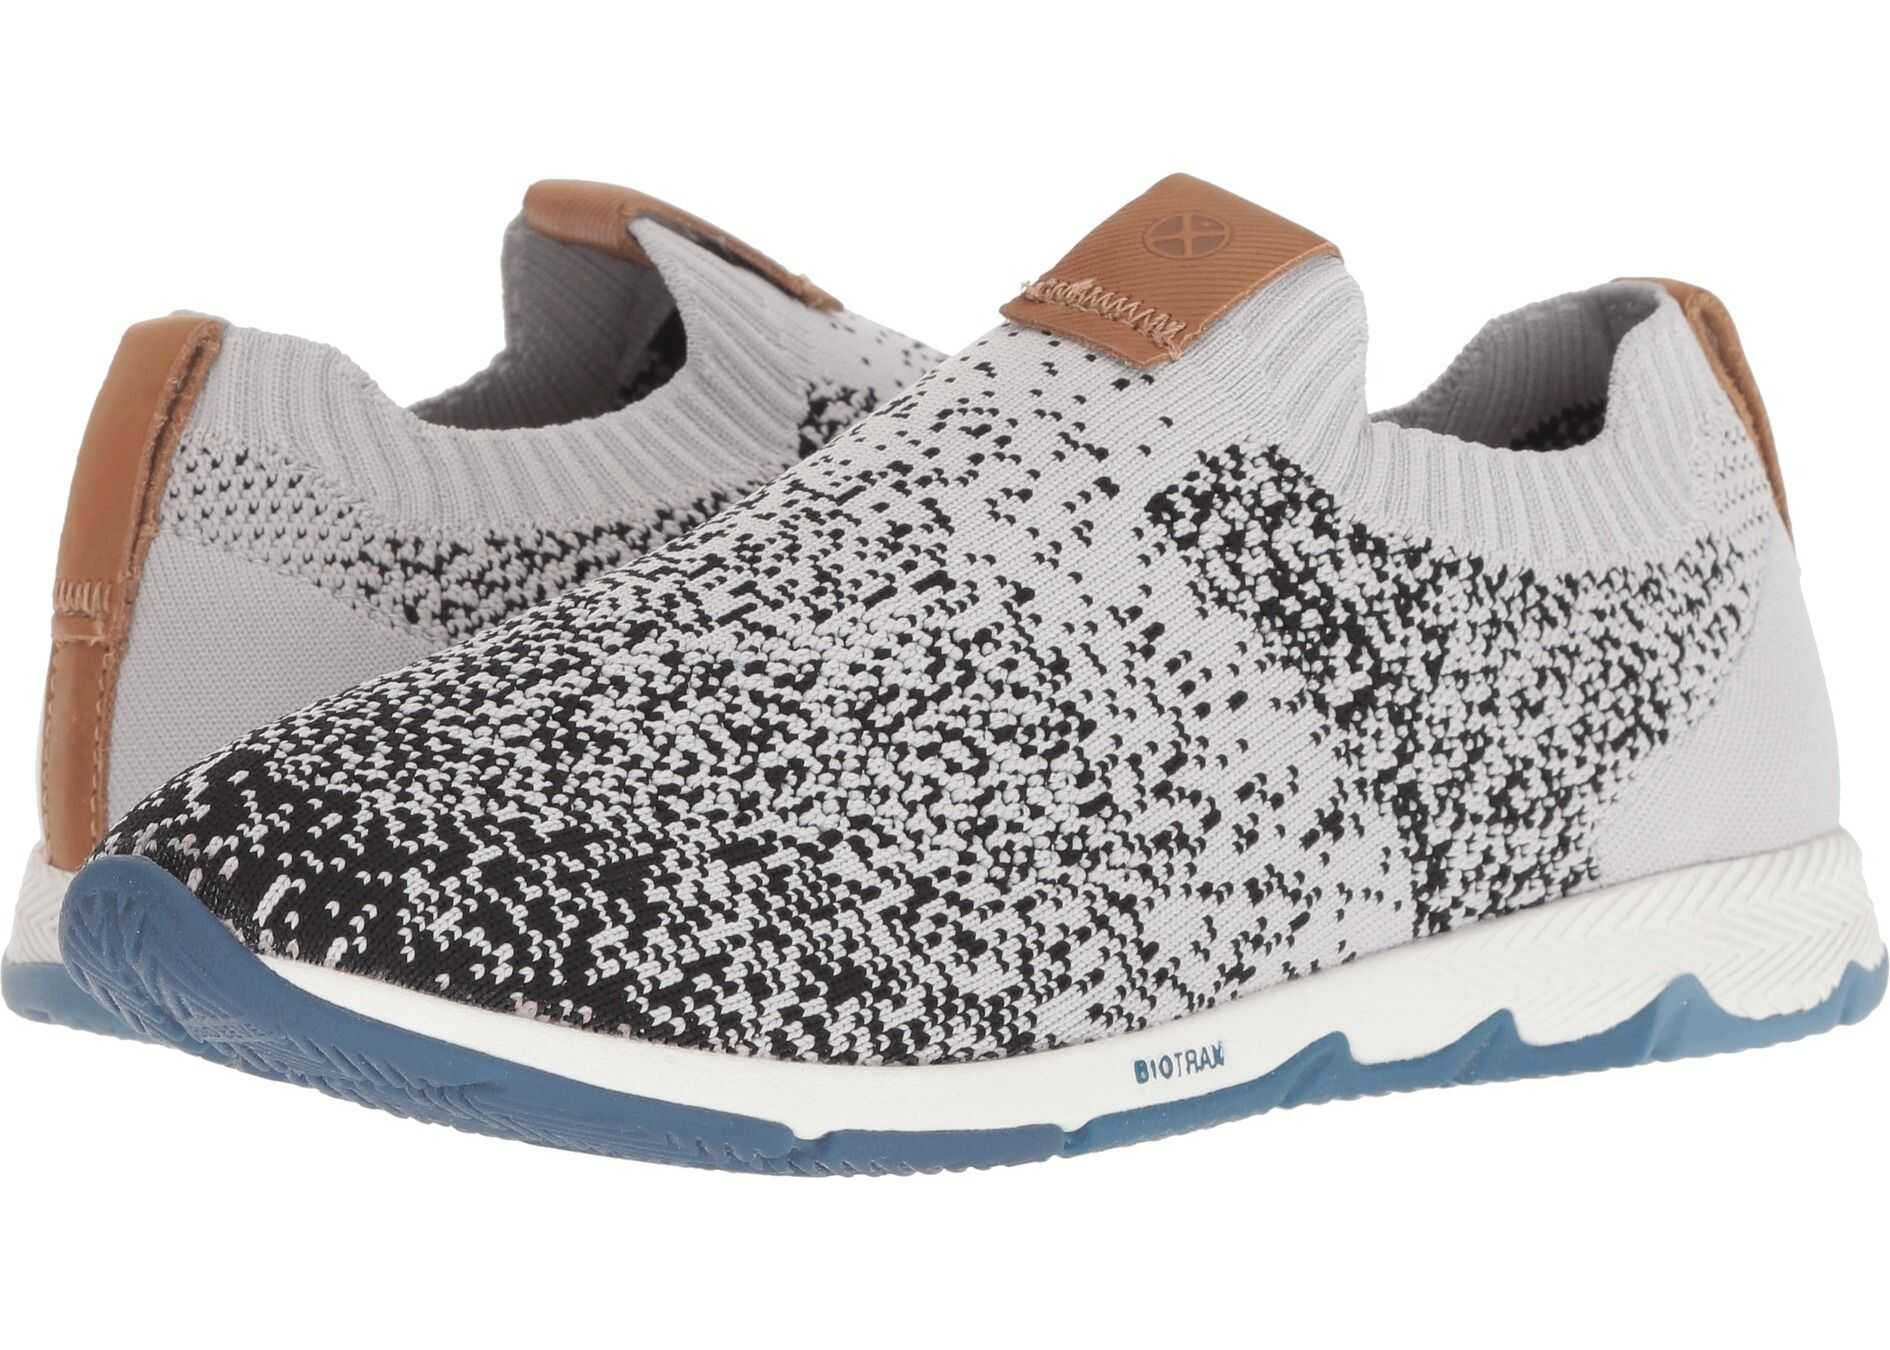 Hush Puppies Cesky Knit Slip-On Cool Grey Knit